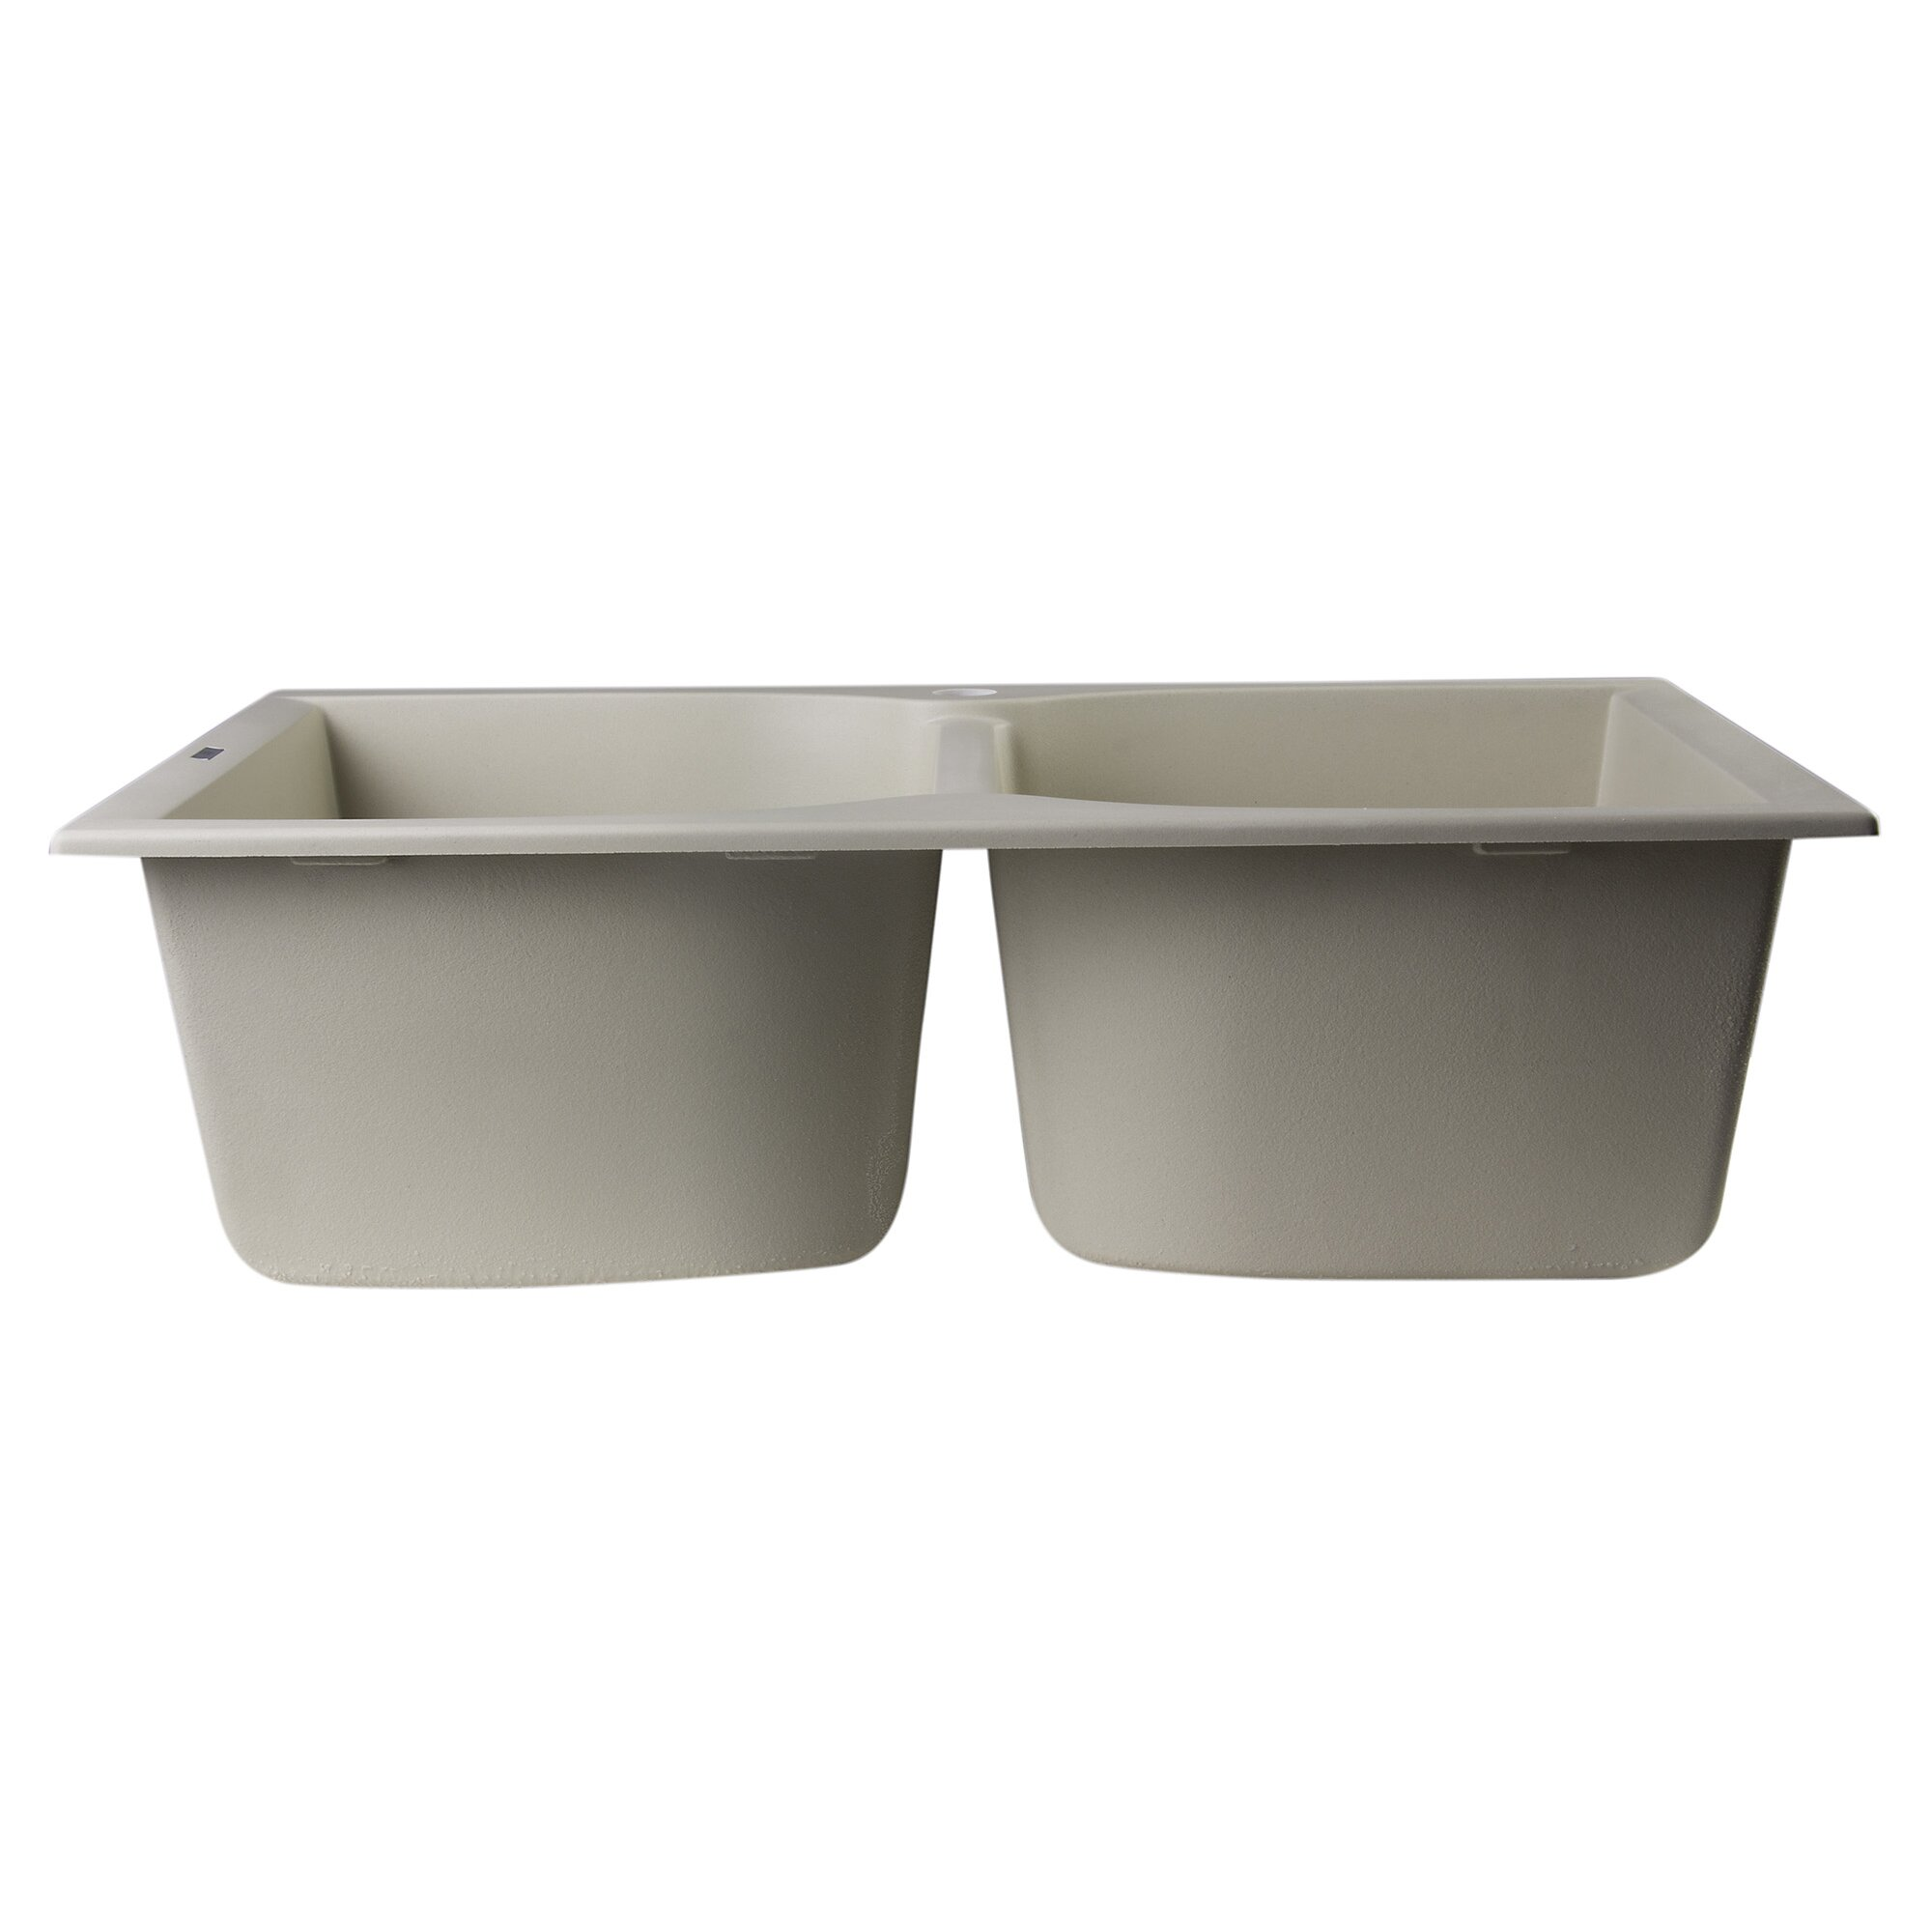 Drop In Kitchen Sinks Double Bowl : ... 31.13